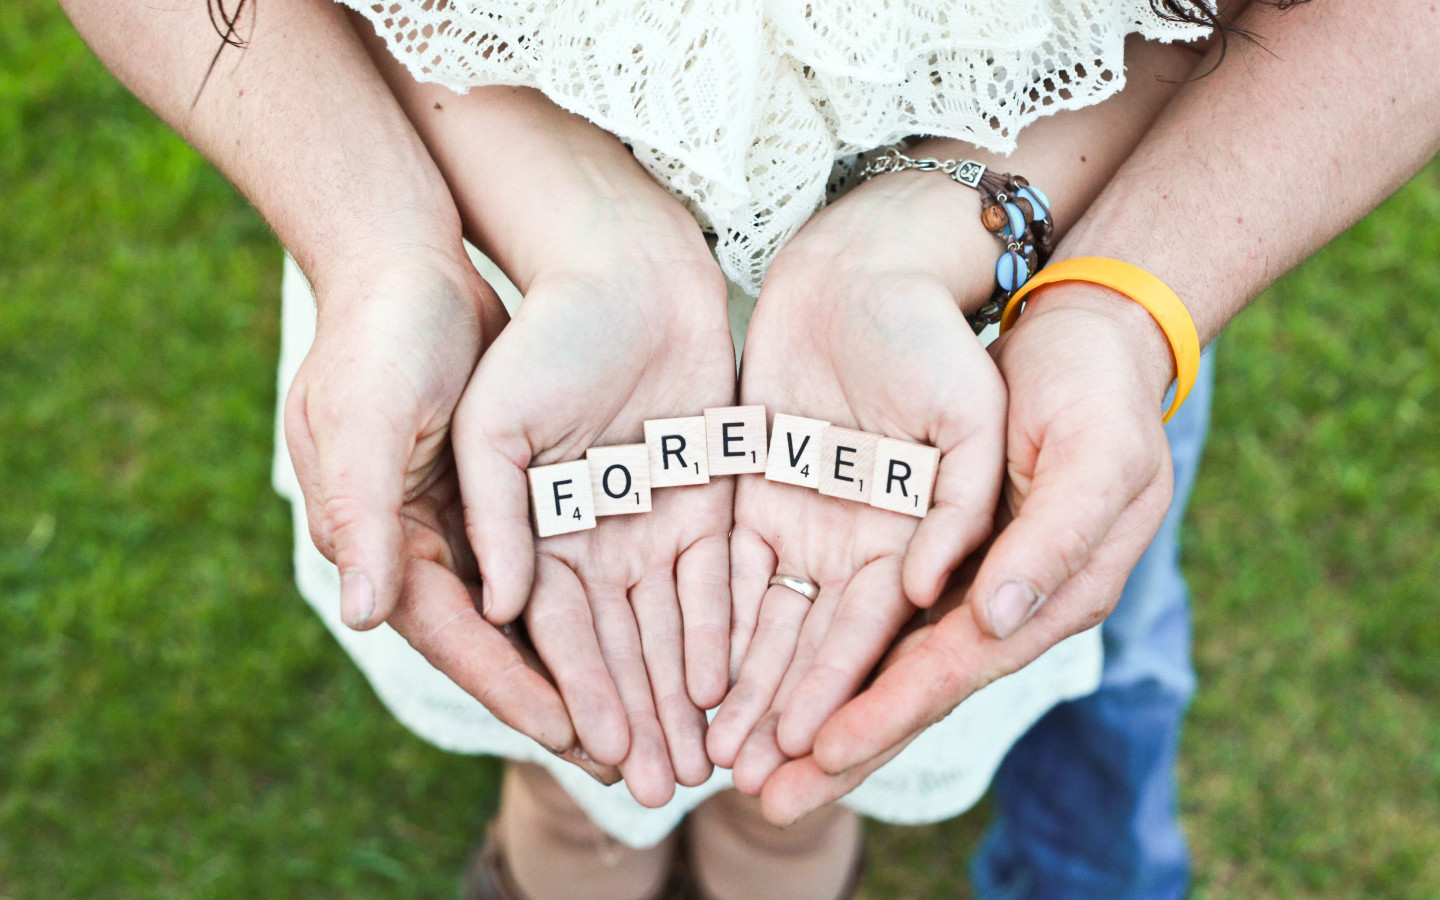 Forever message in their hands wallpaper 1440x900